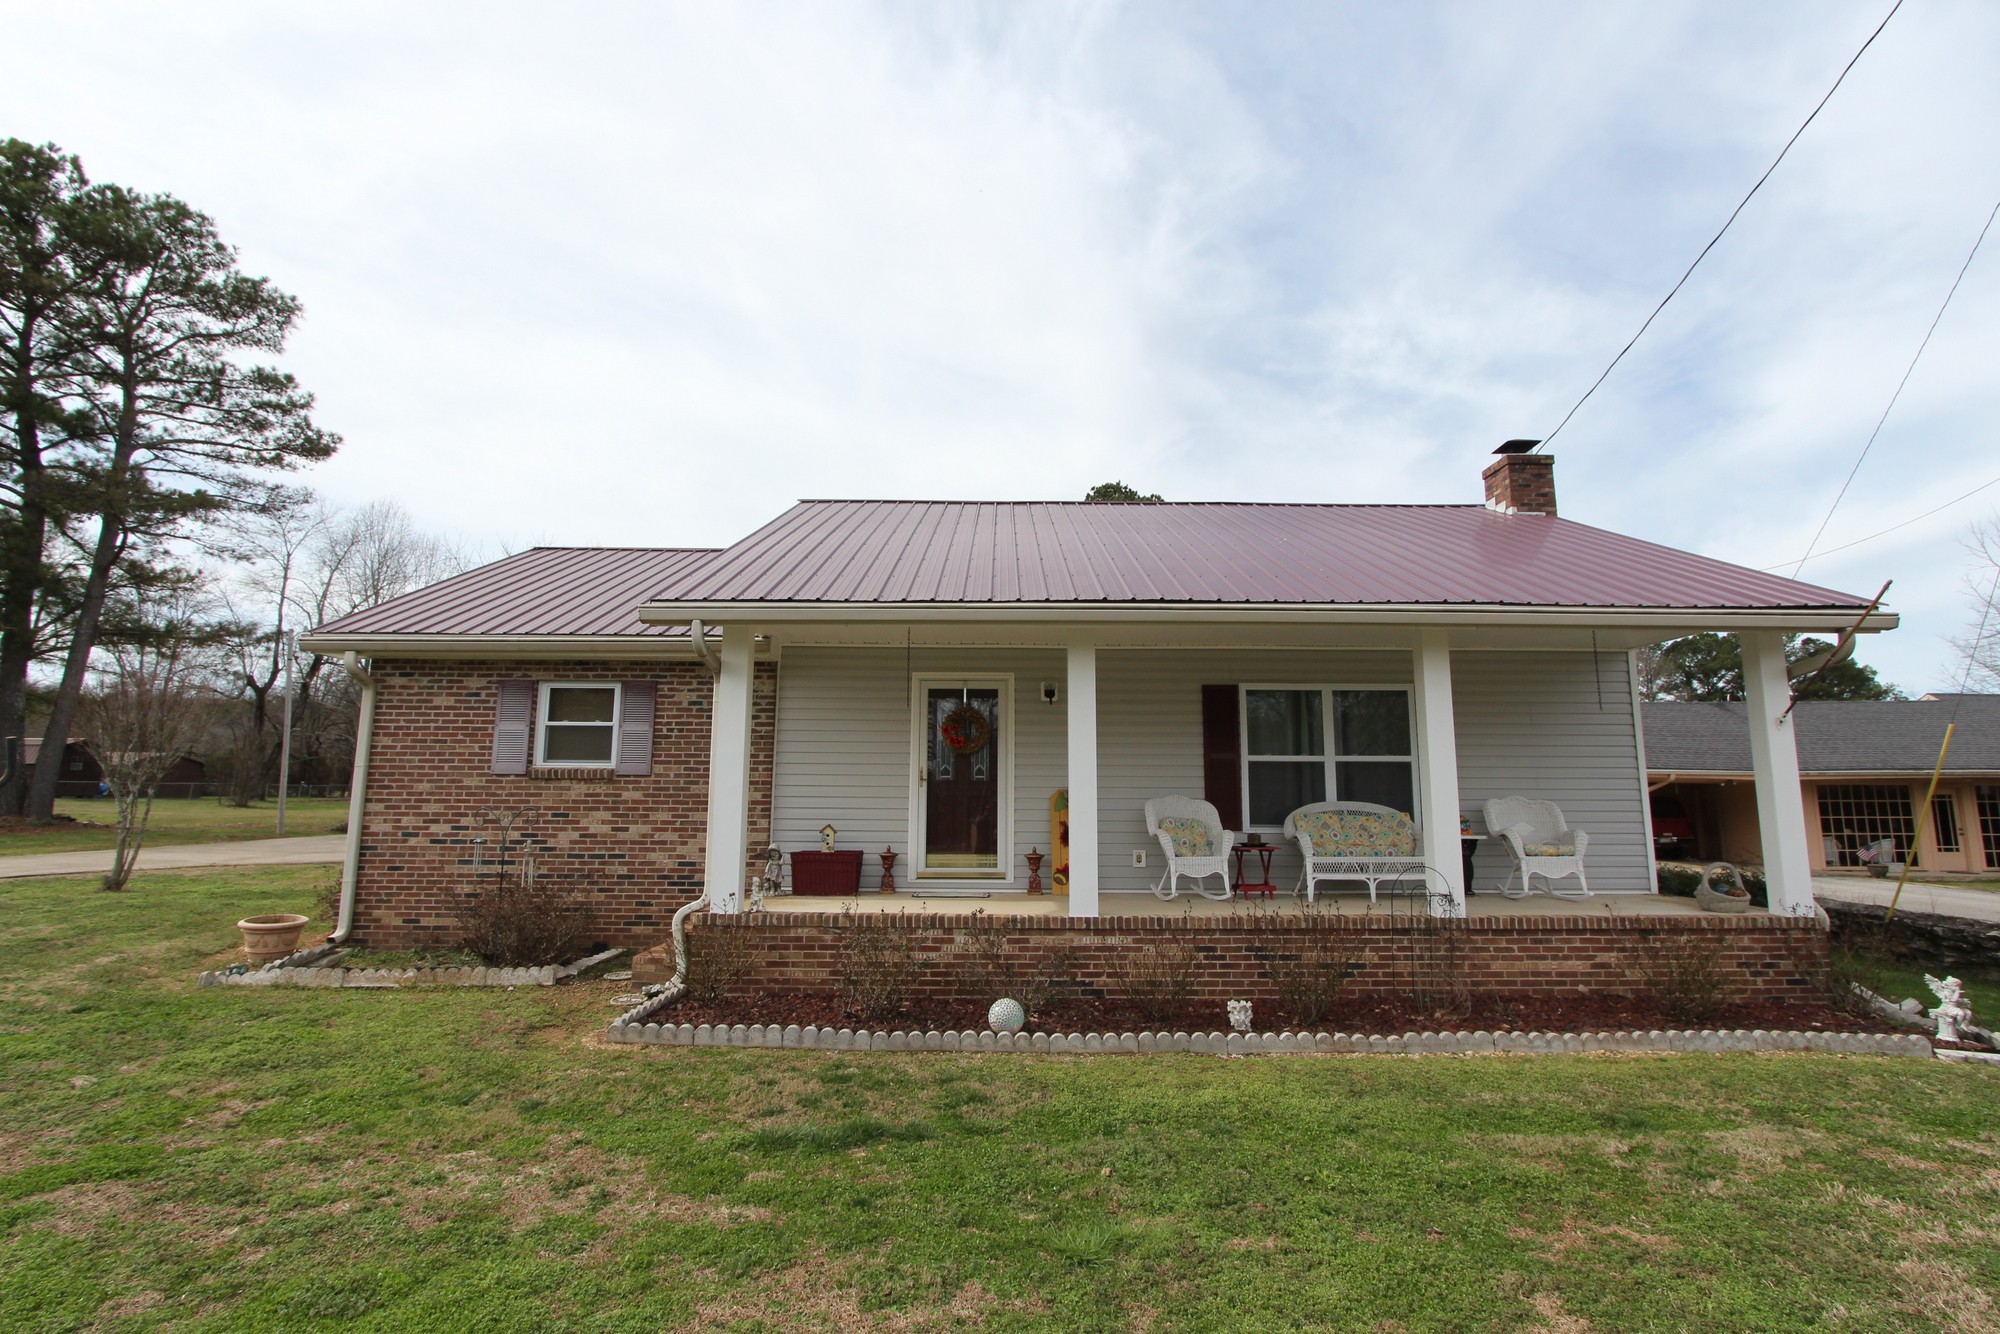 492 S Main St, Lobelville, TN 37097 - Lobelville, TN real estate listing